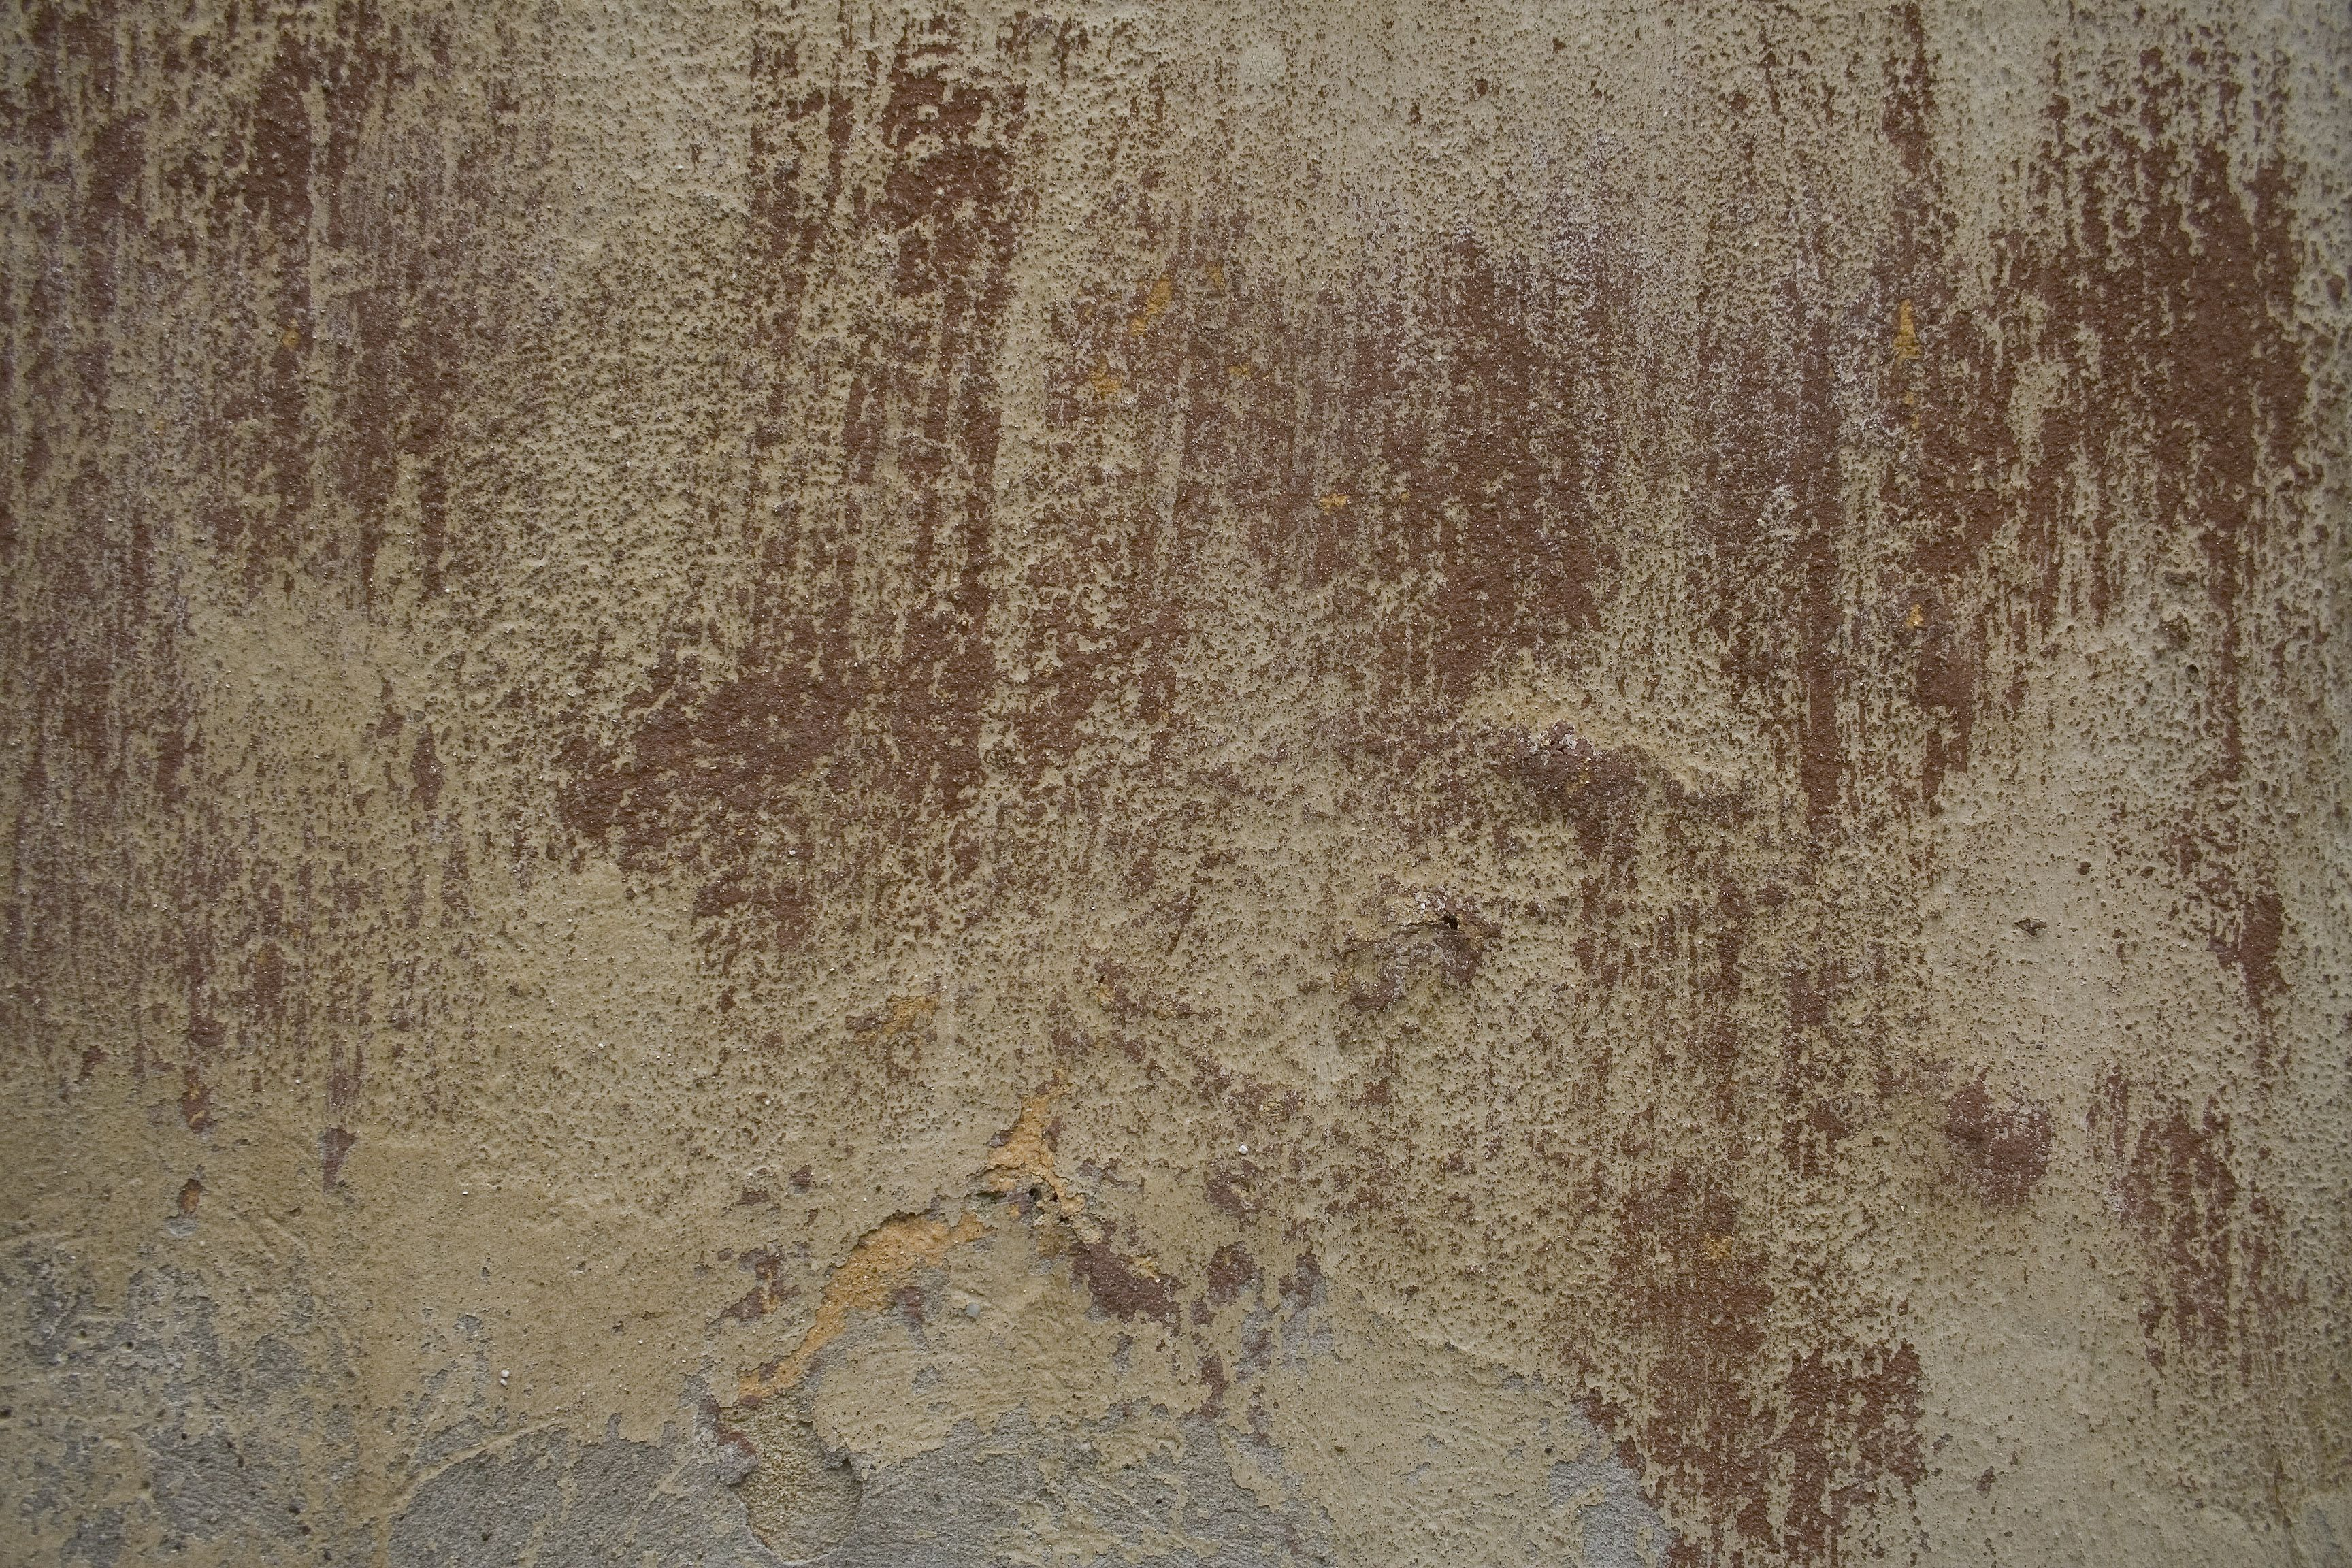 Fall Ceiling Wallpaper Download Free Photo Old Wall Texture Sharp Space Rusty Free